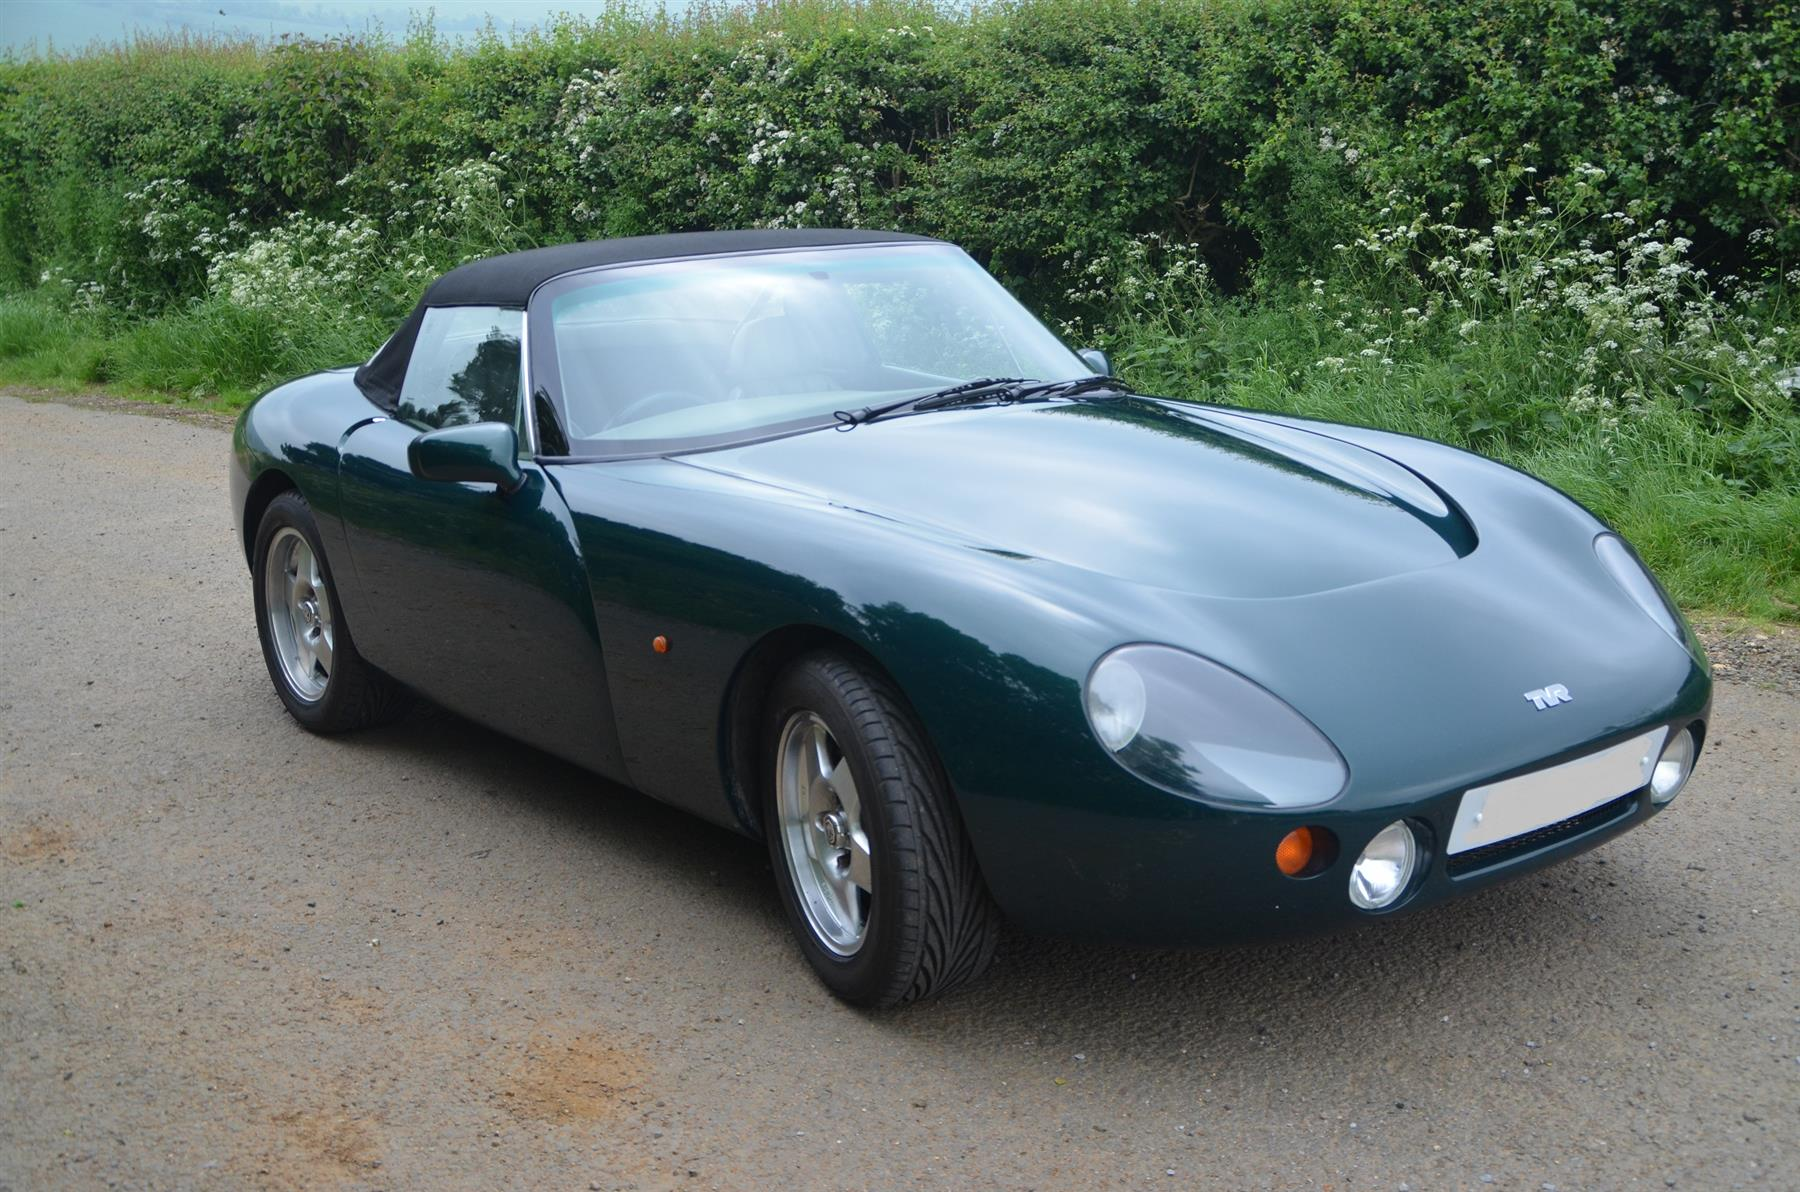 Tvr griffith photo - 10